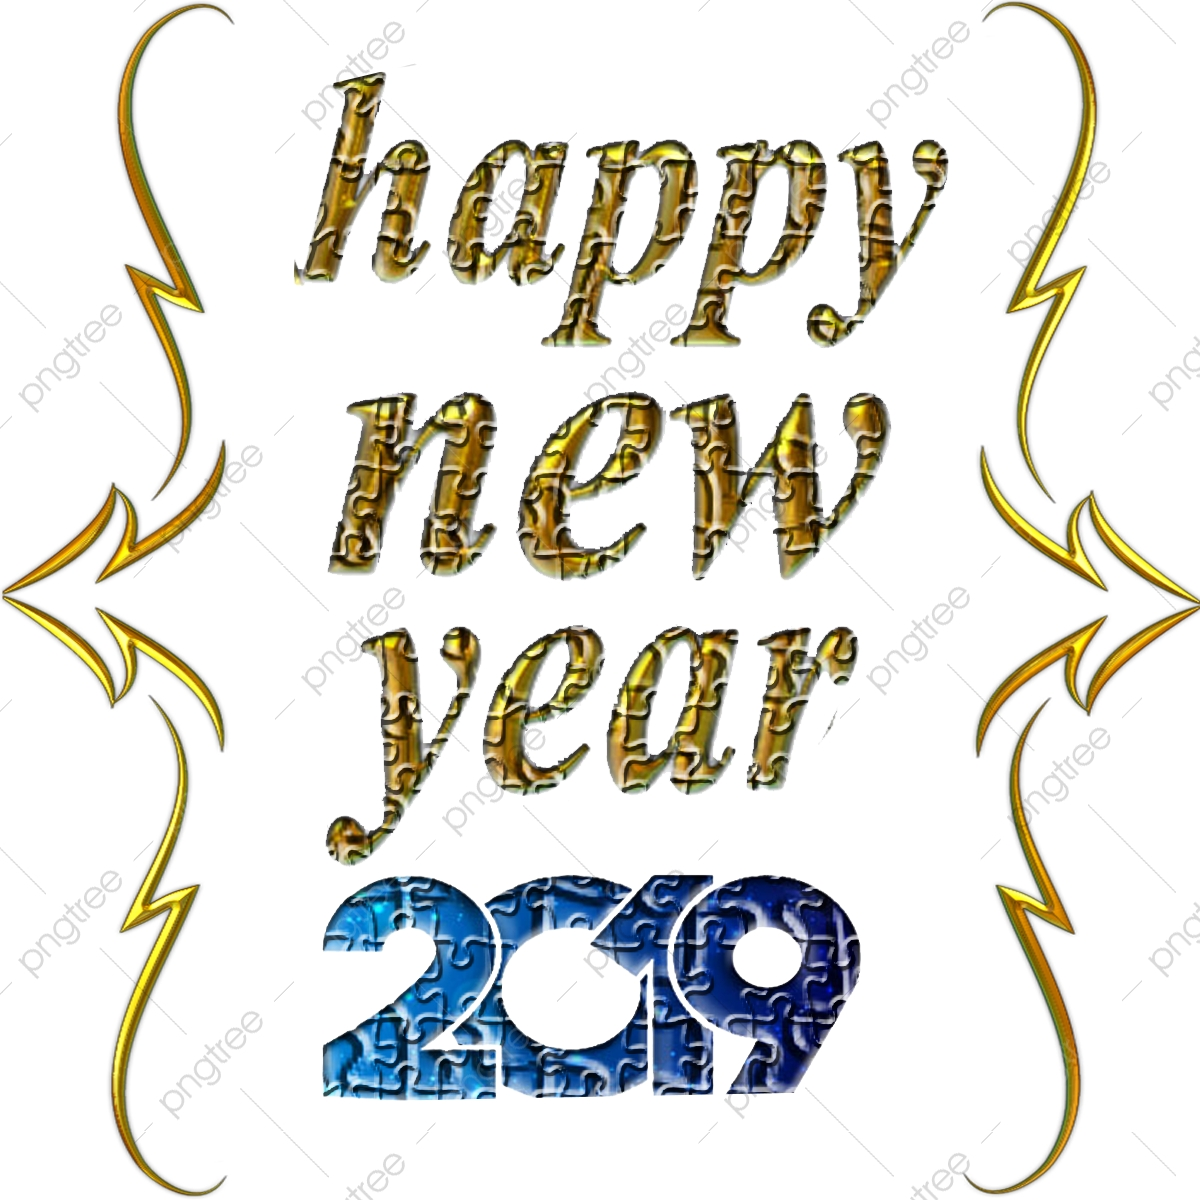 2019 Happy New Year Png And Vector Free Downlod, 2019, Happy, New.